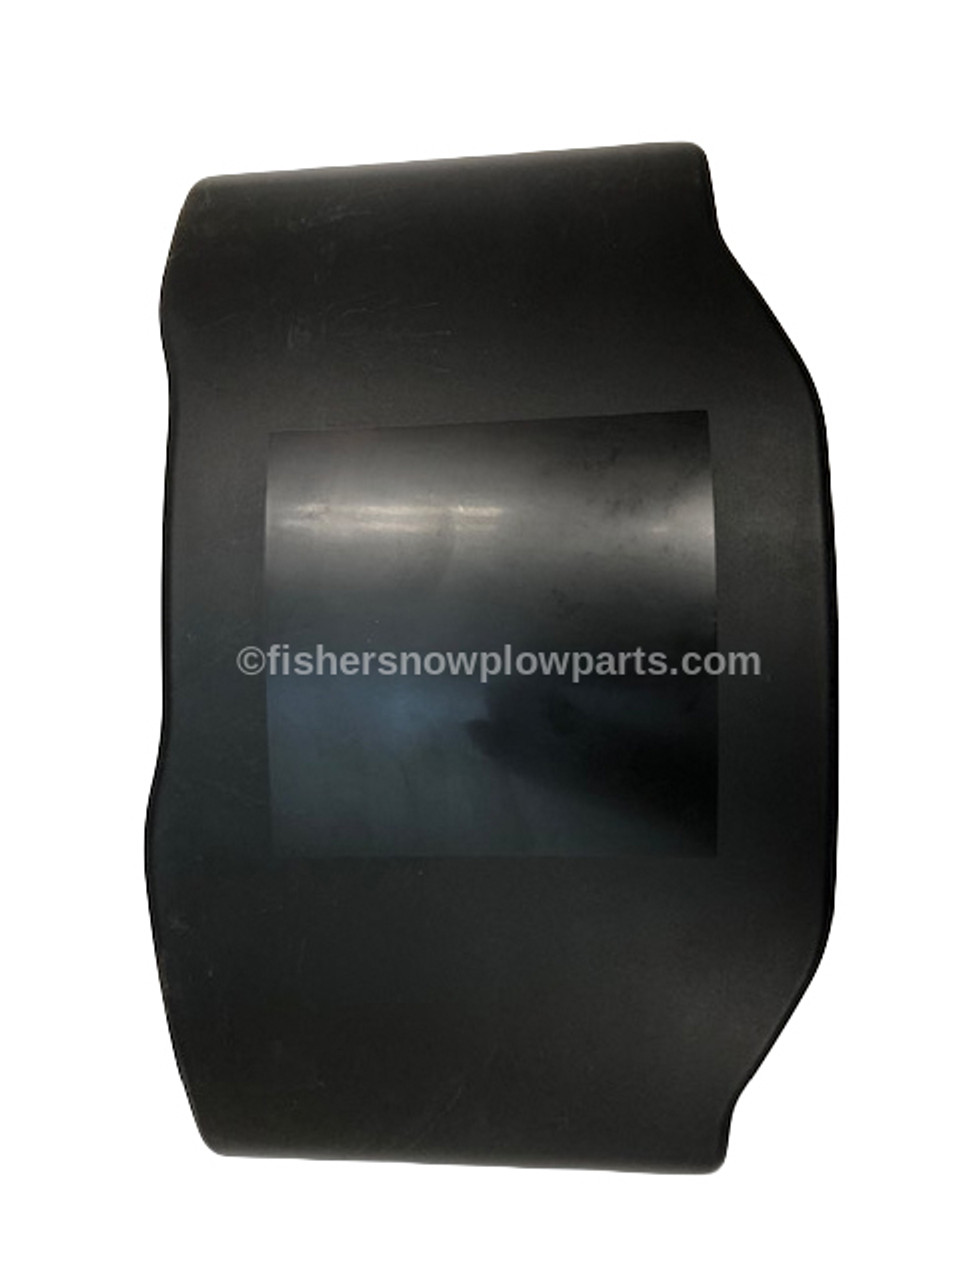 44303 FISHER SNOW PLOWS GENUINE REPLACEMENT PART - EXTREME V, XV2, XLS SIDE FRONT COVER